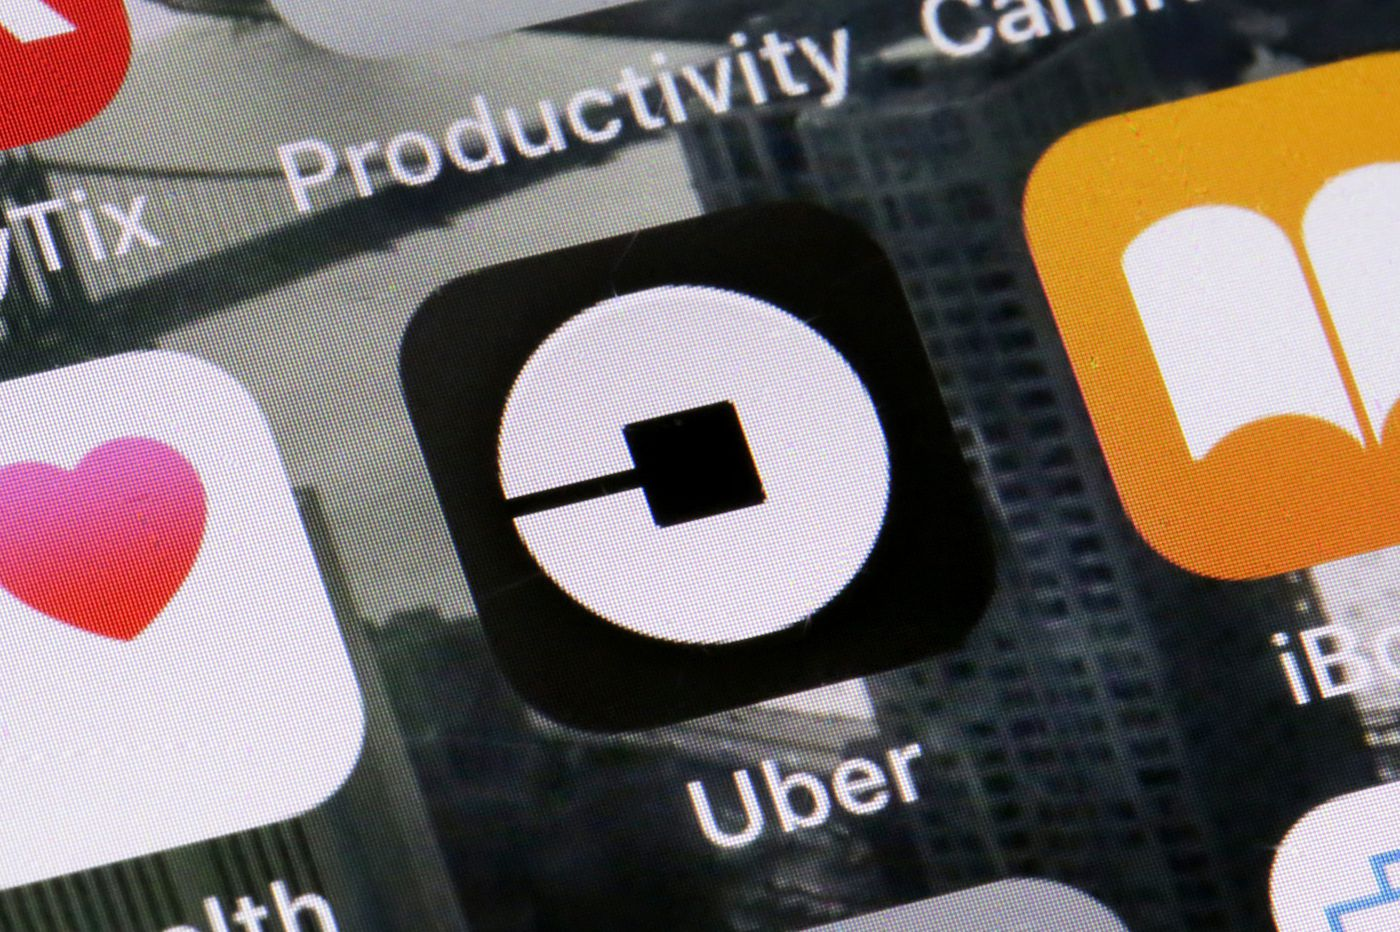 Uber's head of HR resigns reportedly after discrimination probe